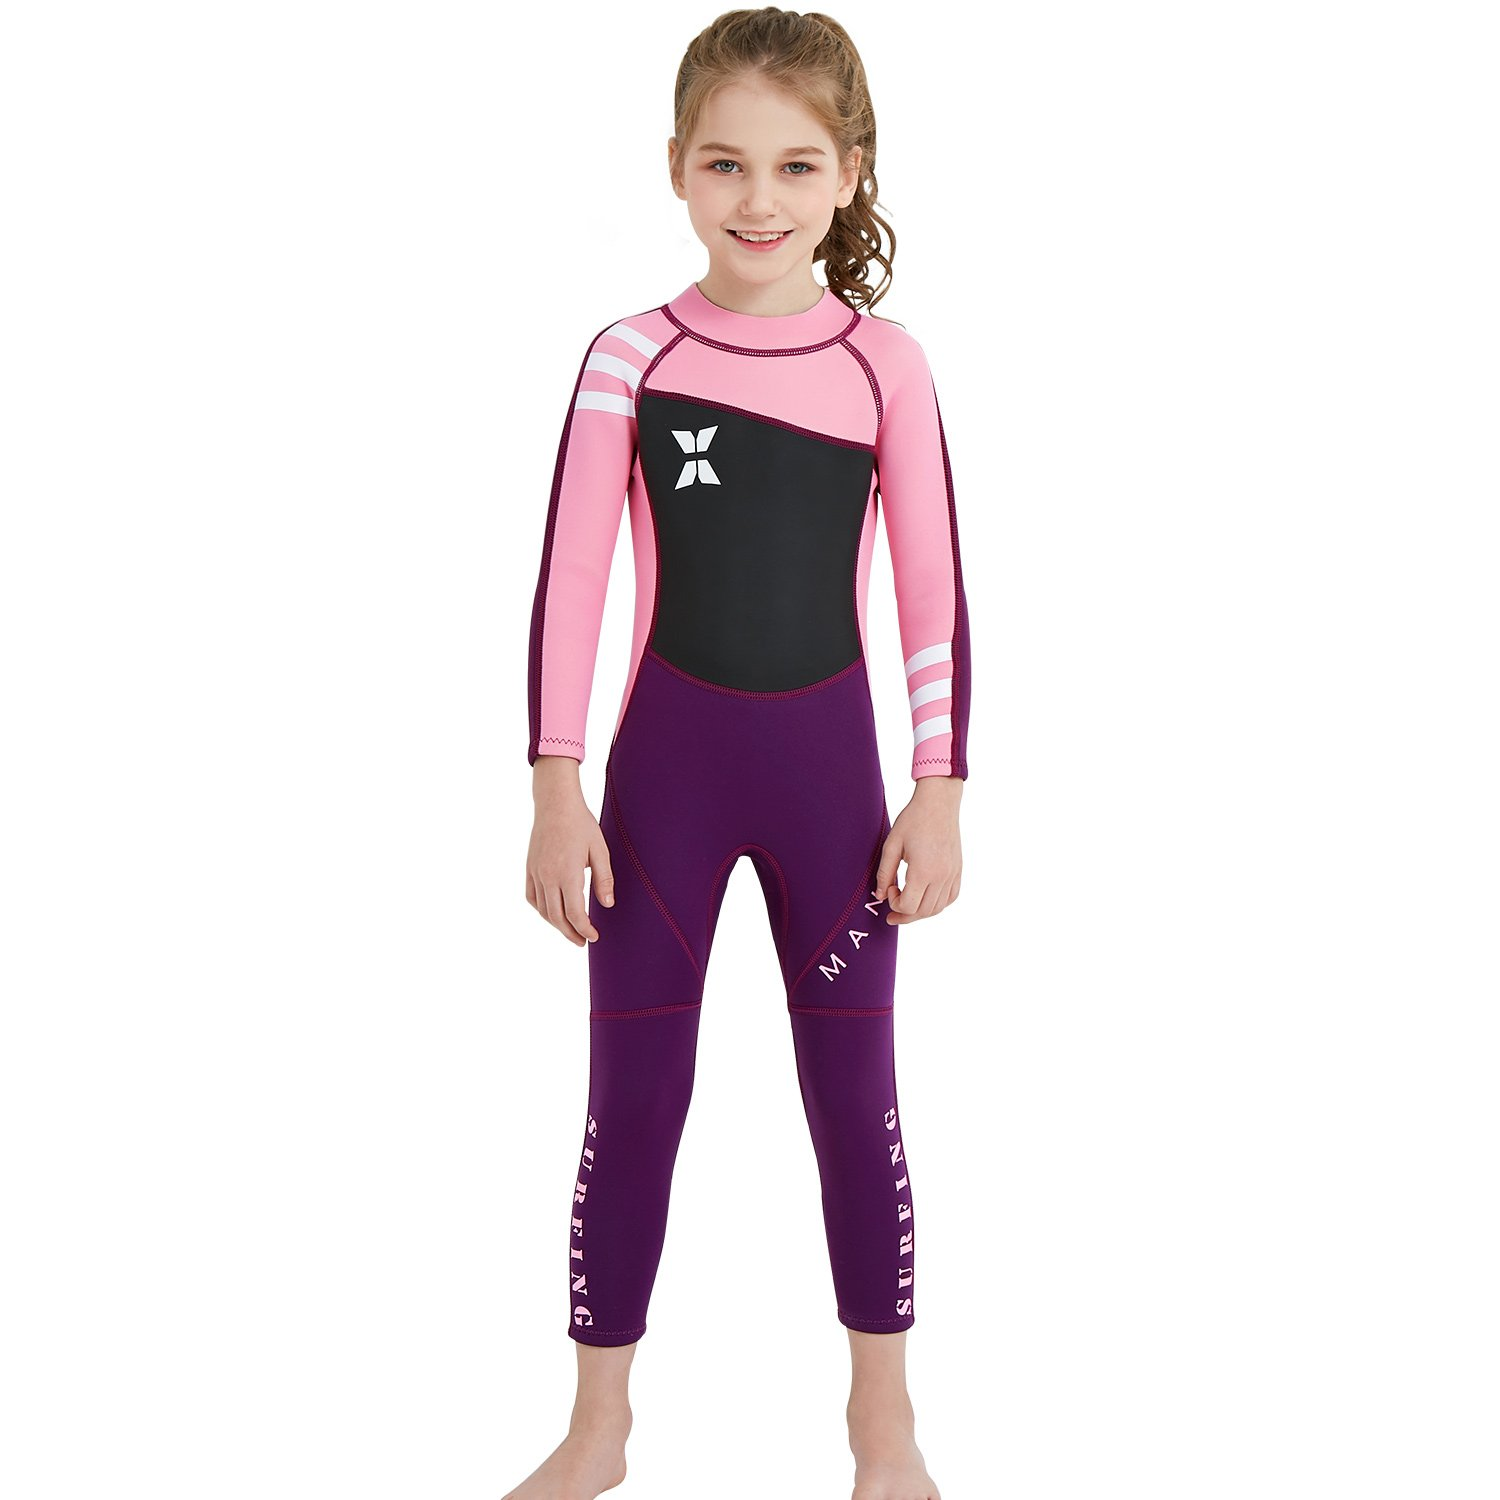 222045c8c0845 Amazon.com   DIVE   SAIL Kids Wetsuit Full Body Swimsuit 2.5mm Neoprene  Wetsuit UV Protective Thermal Swimwear for Diving Scuba   Sports   Outdoors